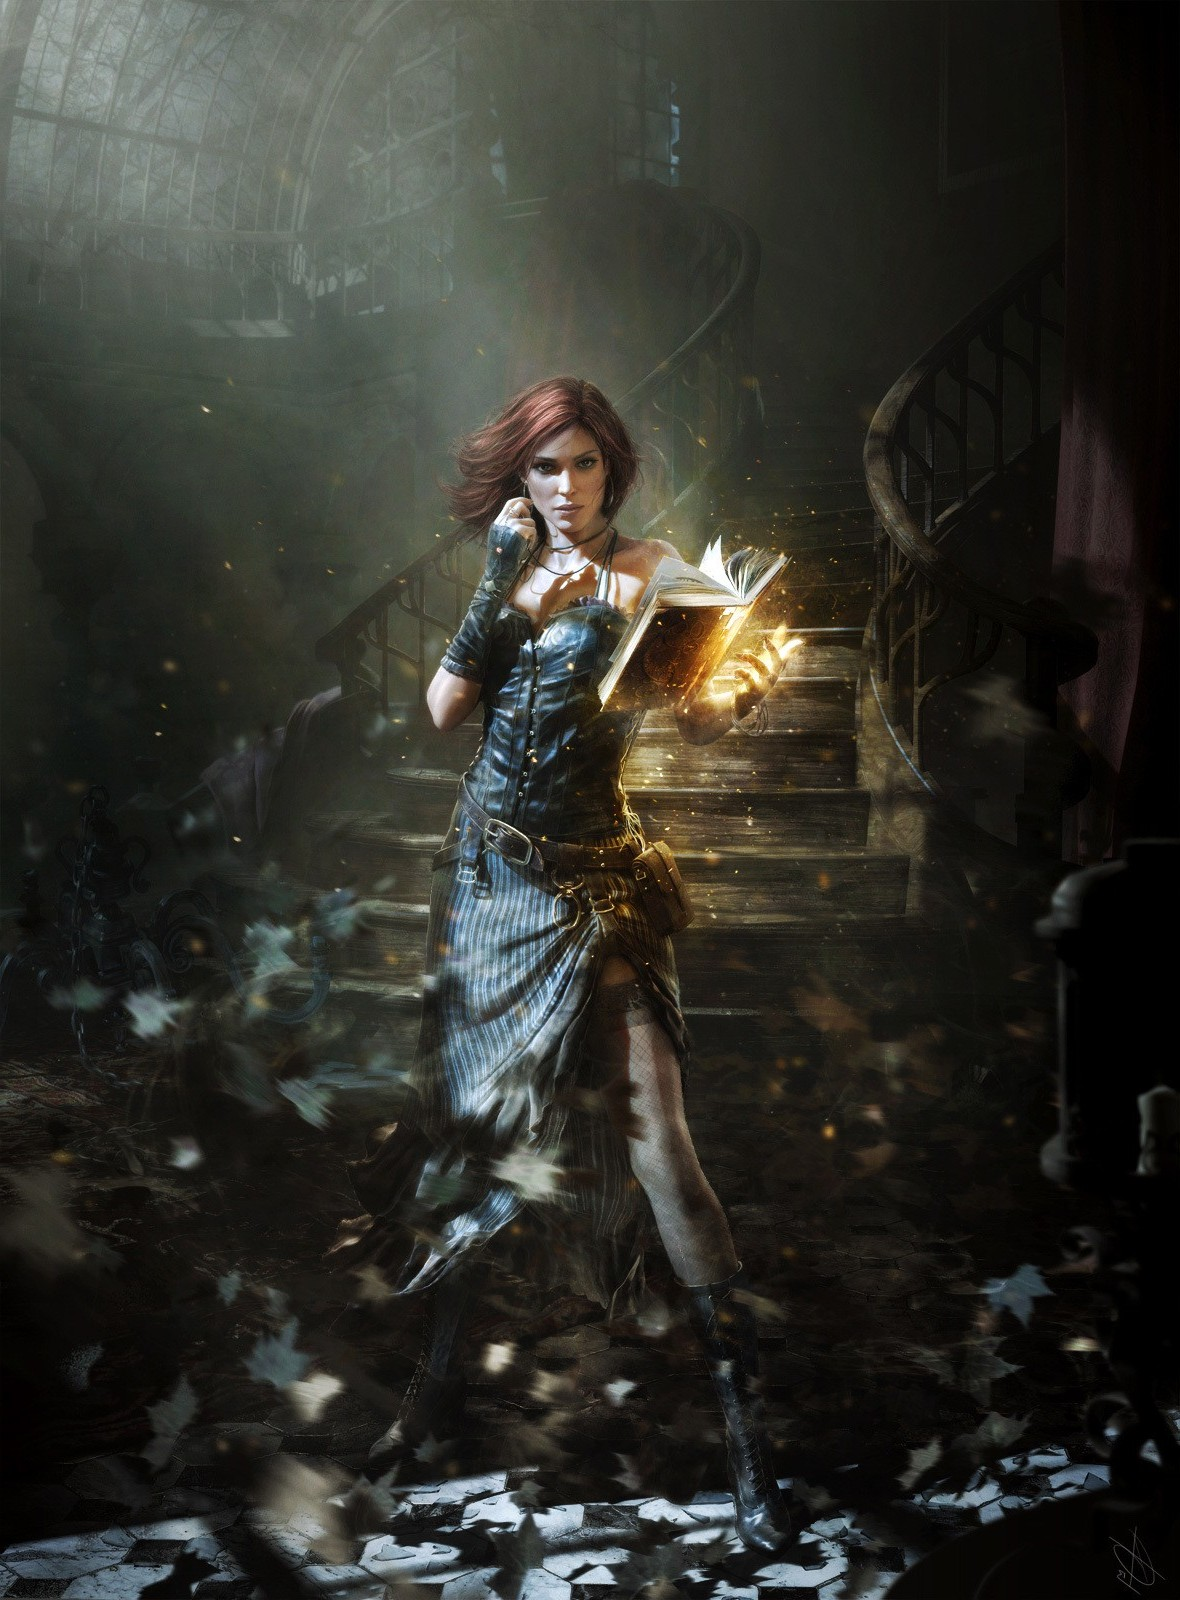 5760x1080 Wallpaper Girl Witch Video Games Wallpapers Hd Desktop And Mobile